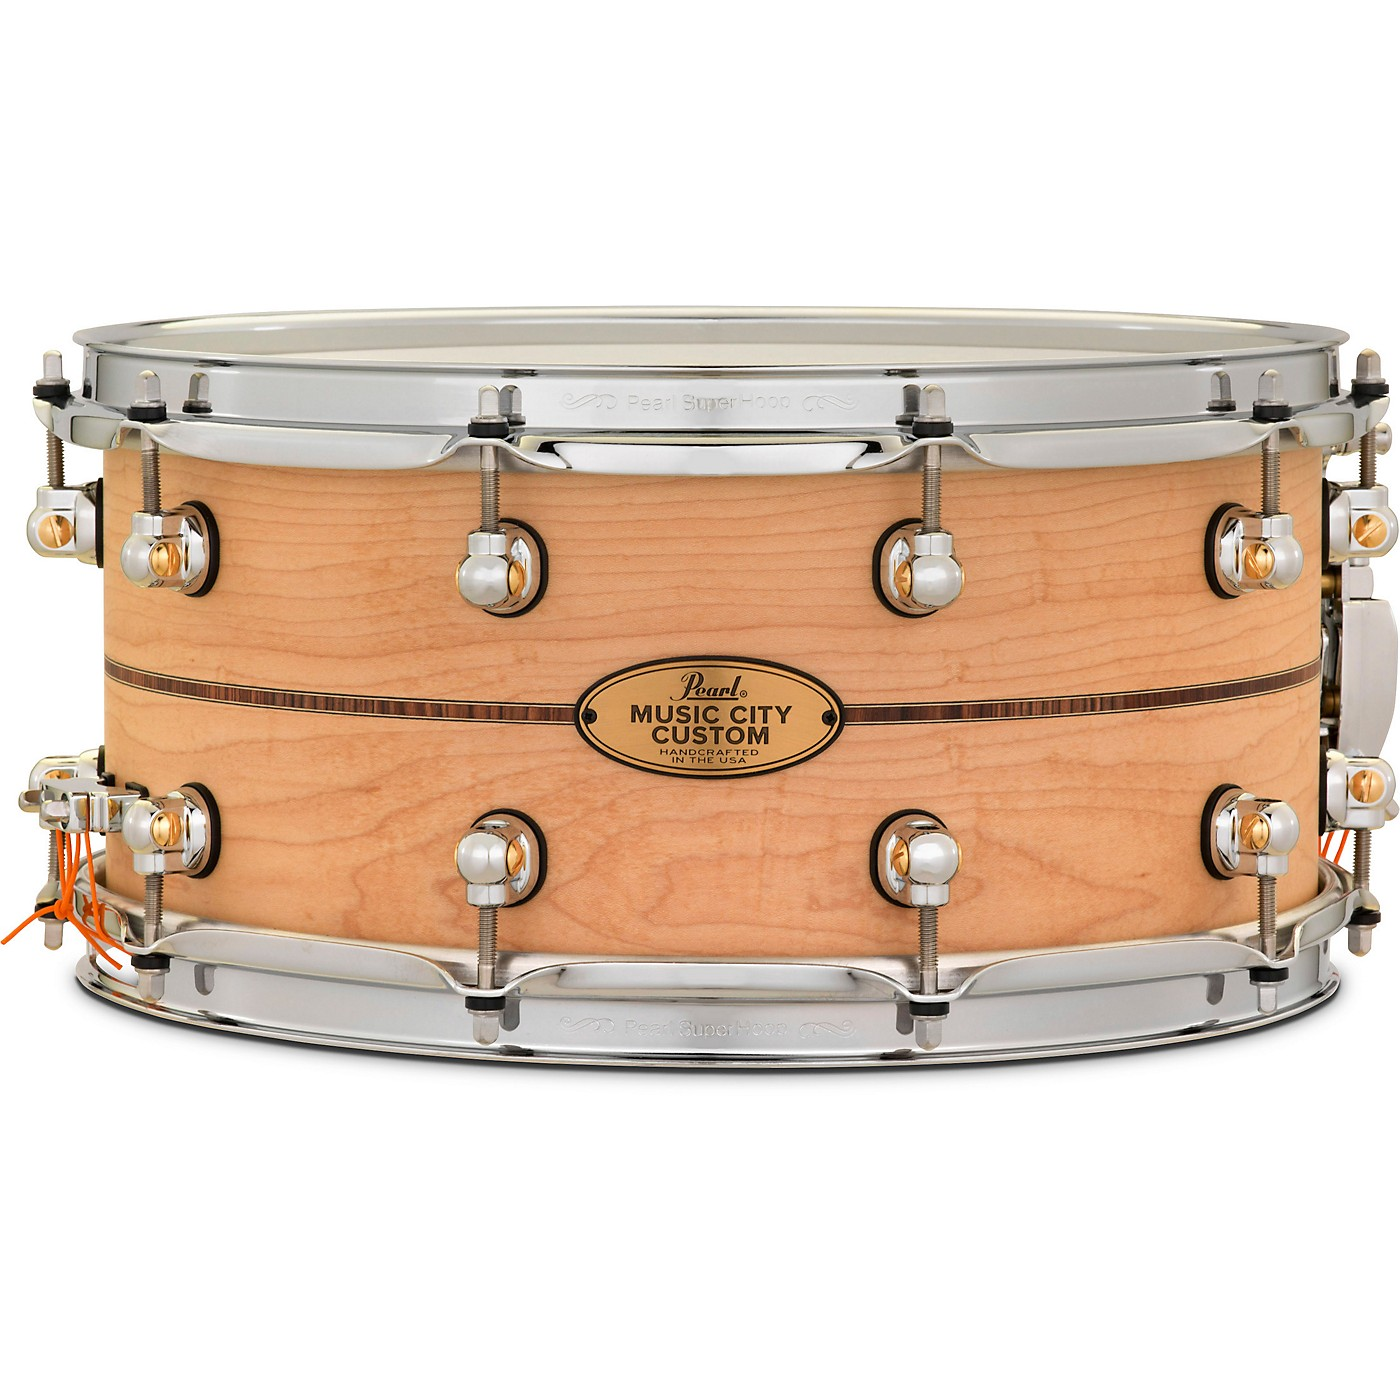 Pearl Music City Custom Solid Shell Snare Maple with Kingwood Center Inlay thumbnail